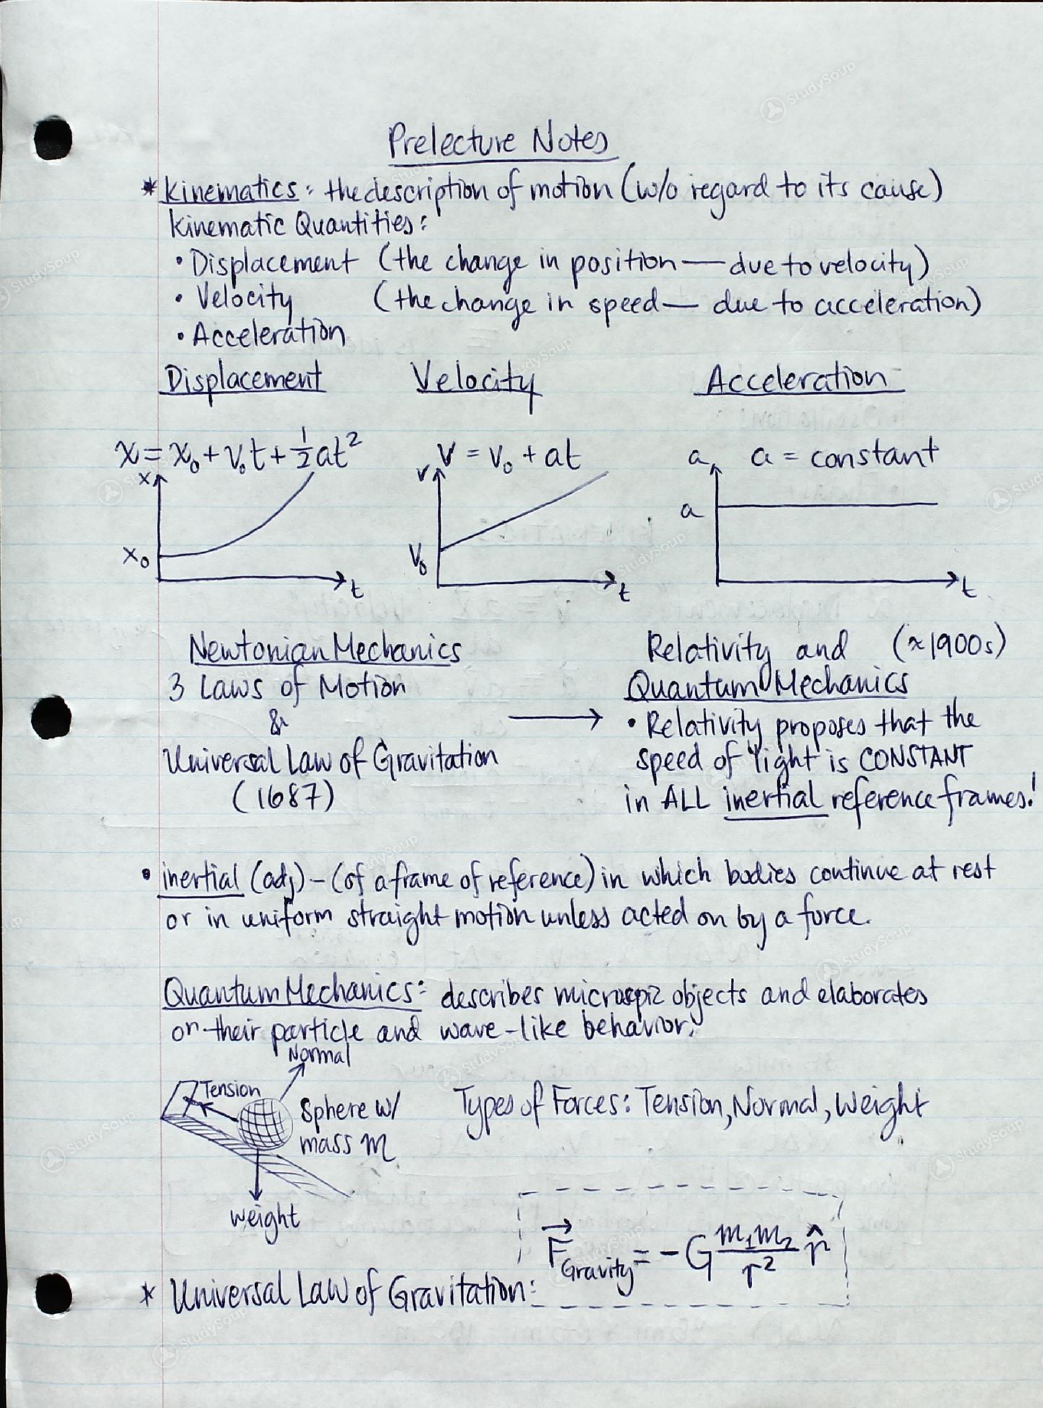 UCONN - PHYS 1501 - Study Guide - Midterm